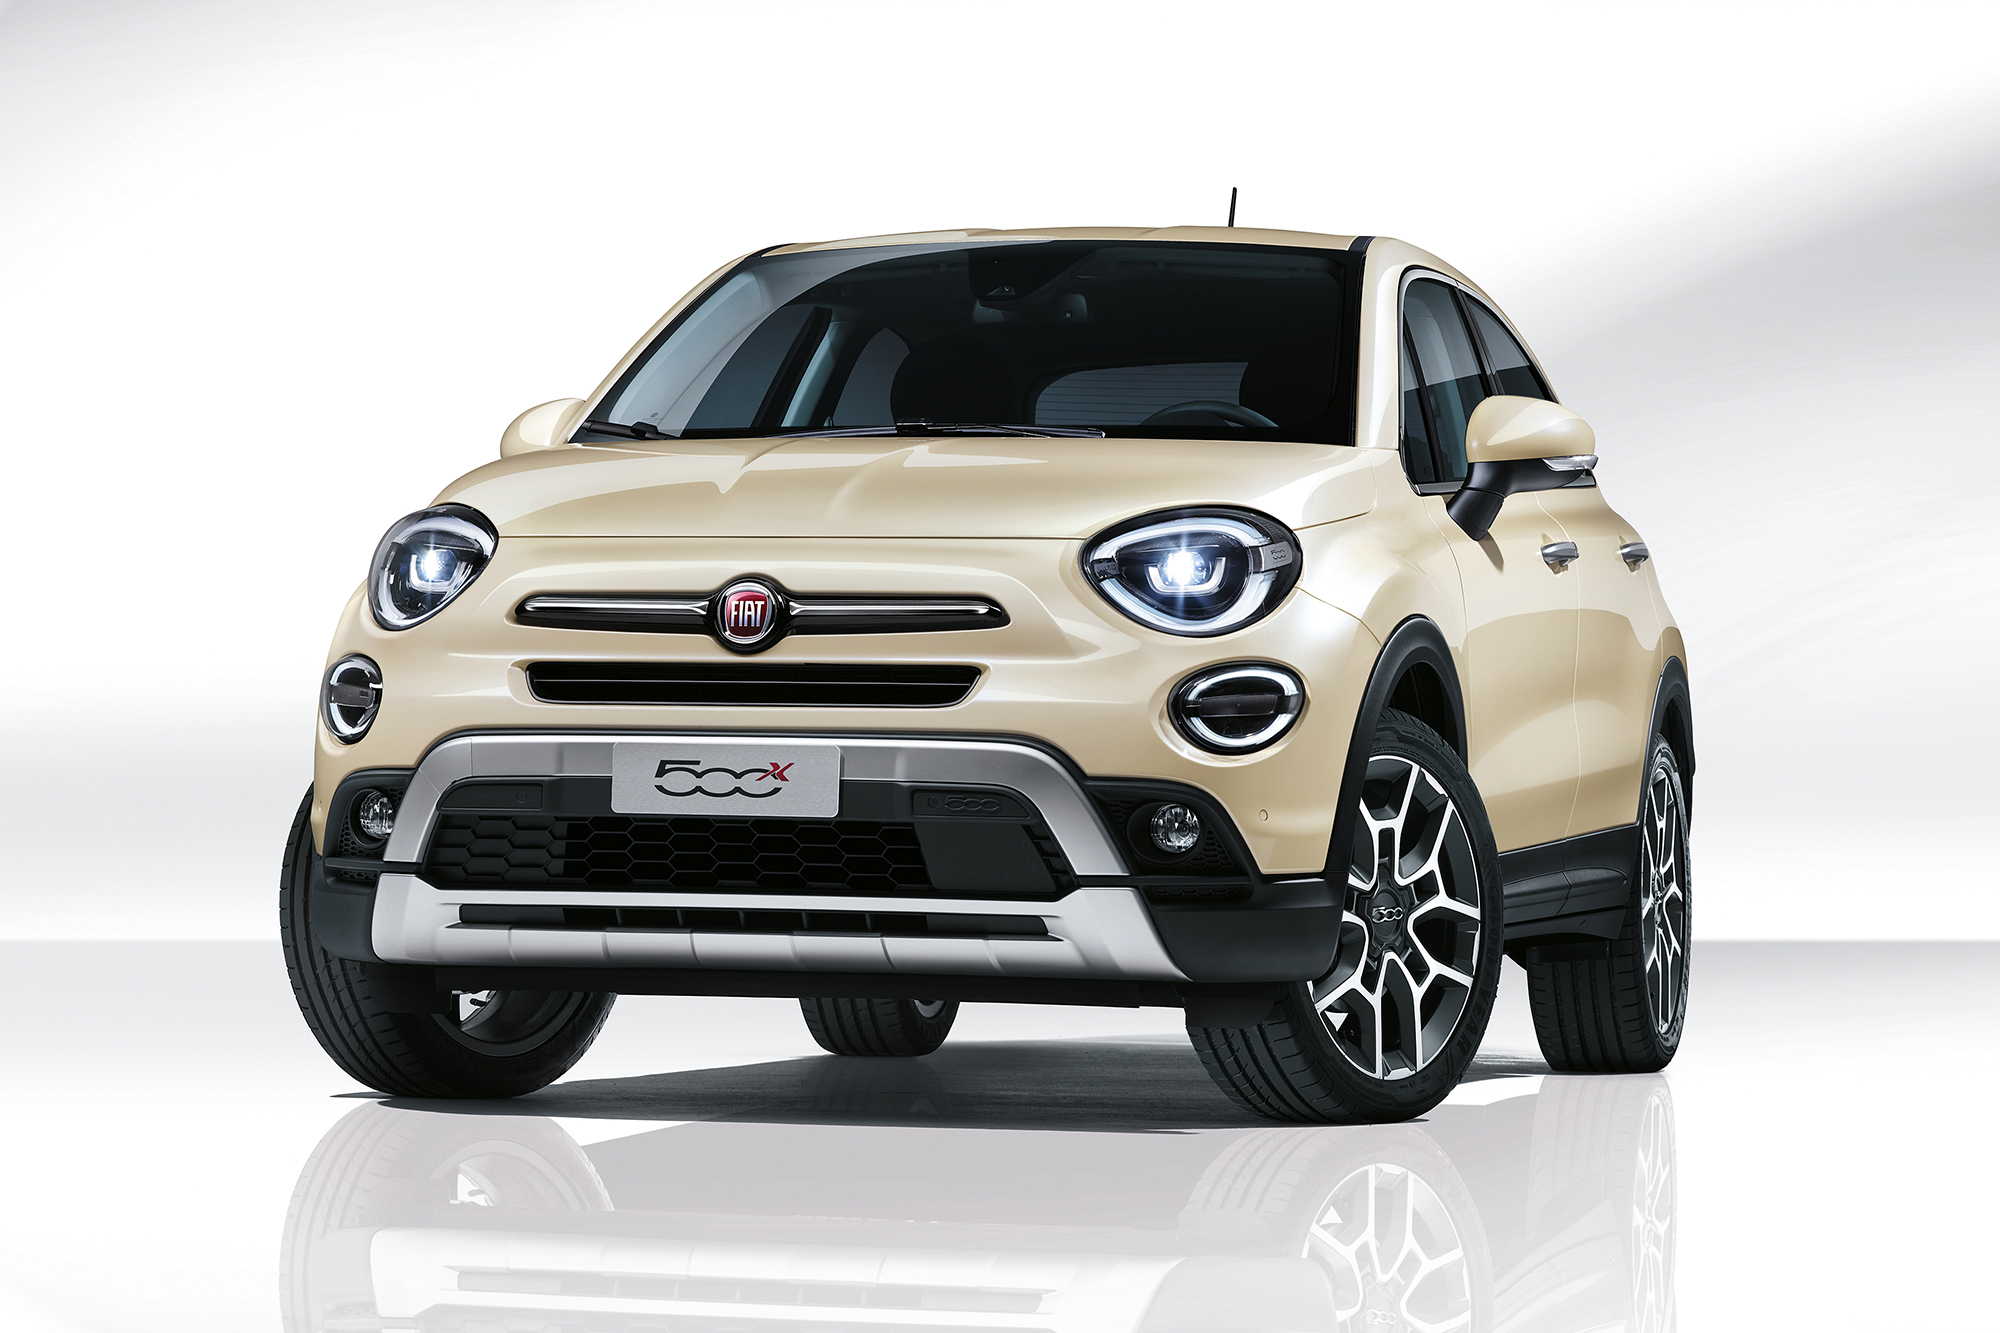 fiat 500x restyling le novit motori fari led prezzo da euro qn motori. Black Bedroom Furniture Sets. Home Design Ideas